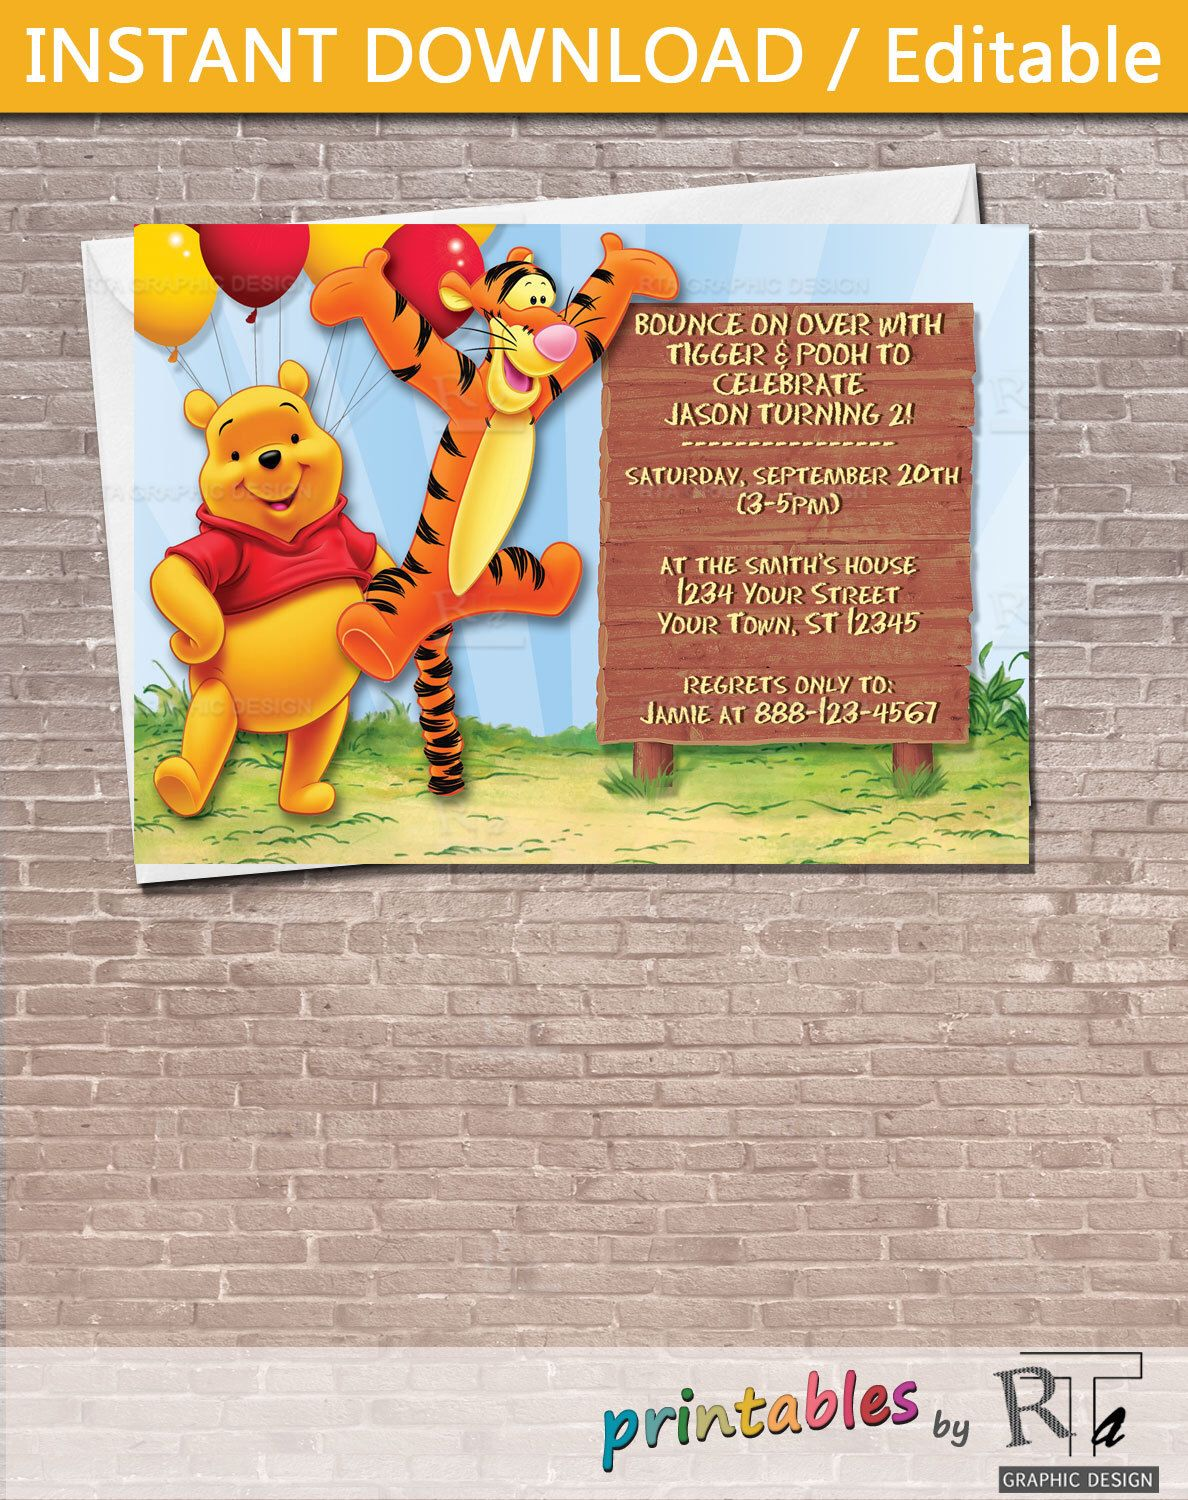 Winnie The Pooh And Tigger Party Invitation Download Editable Birthday Kids Children